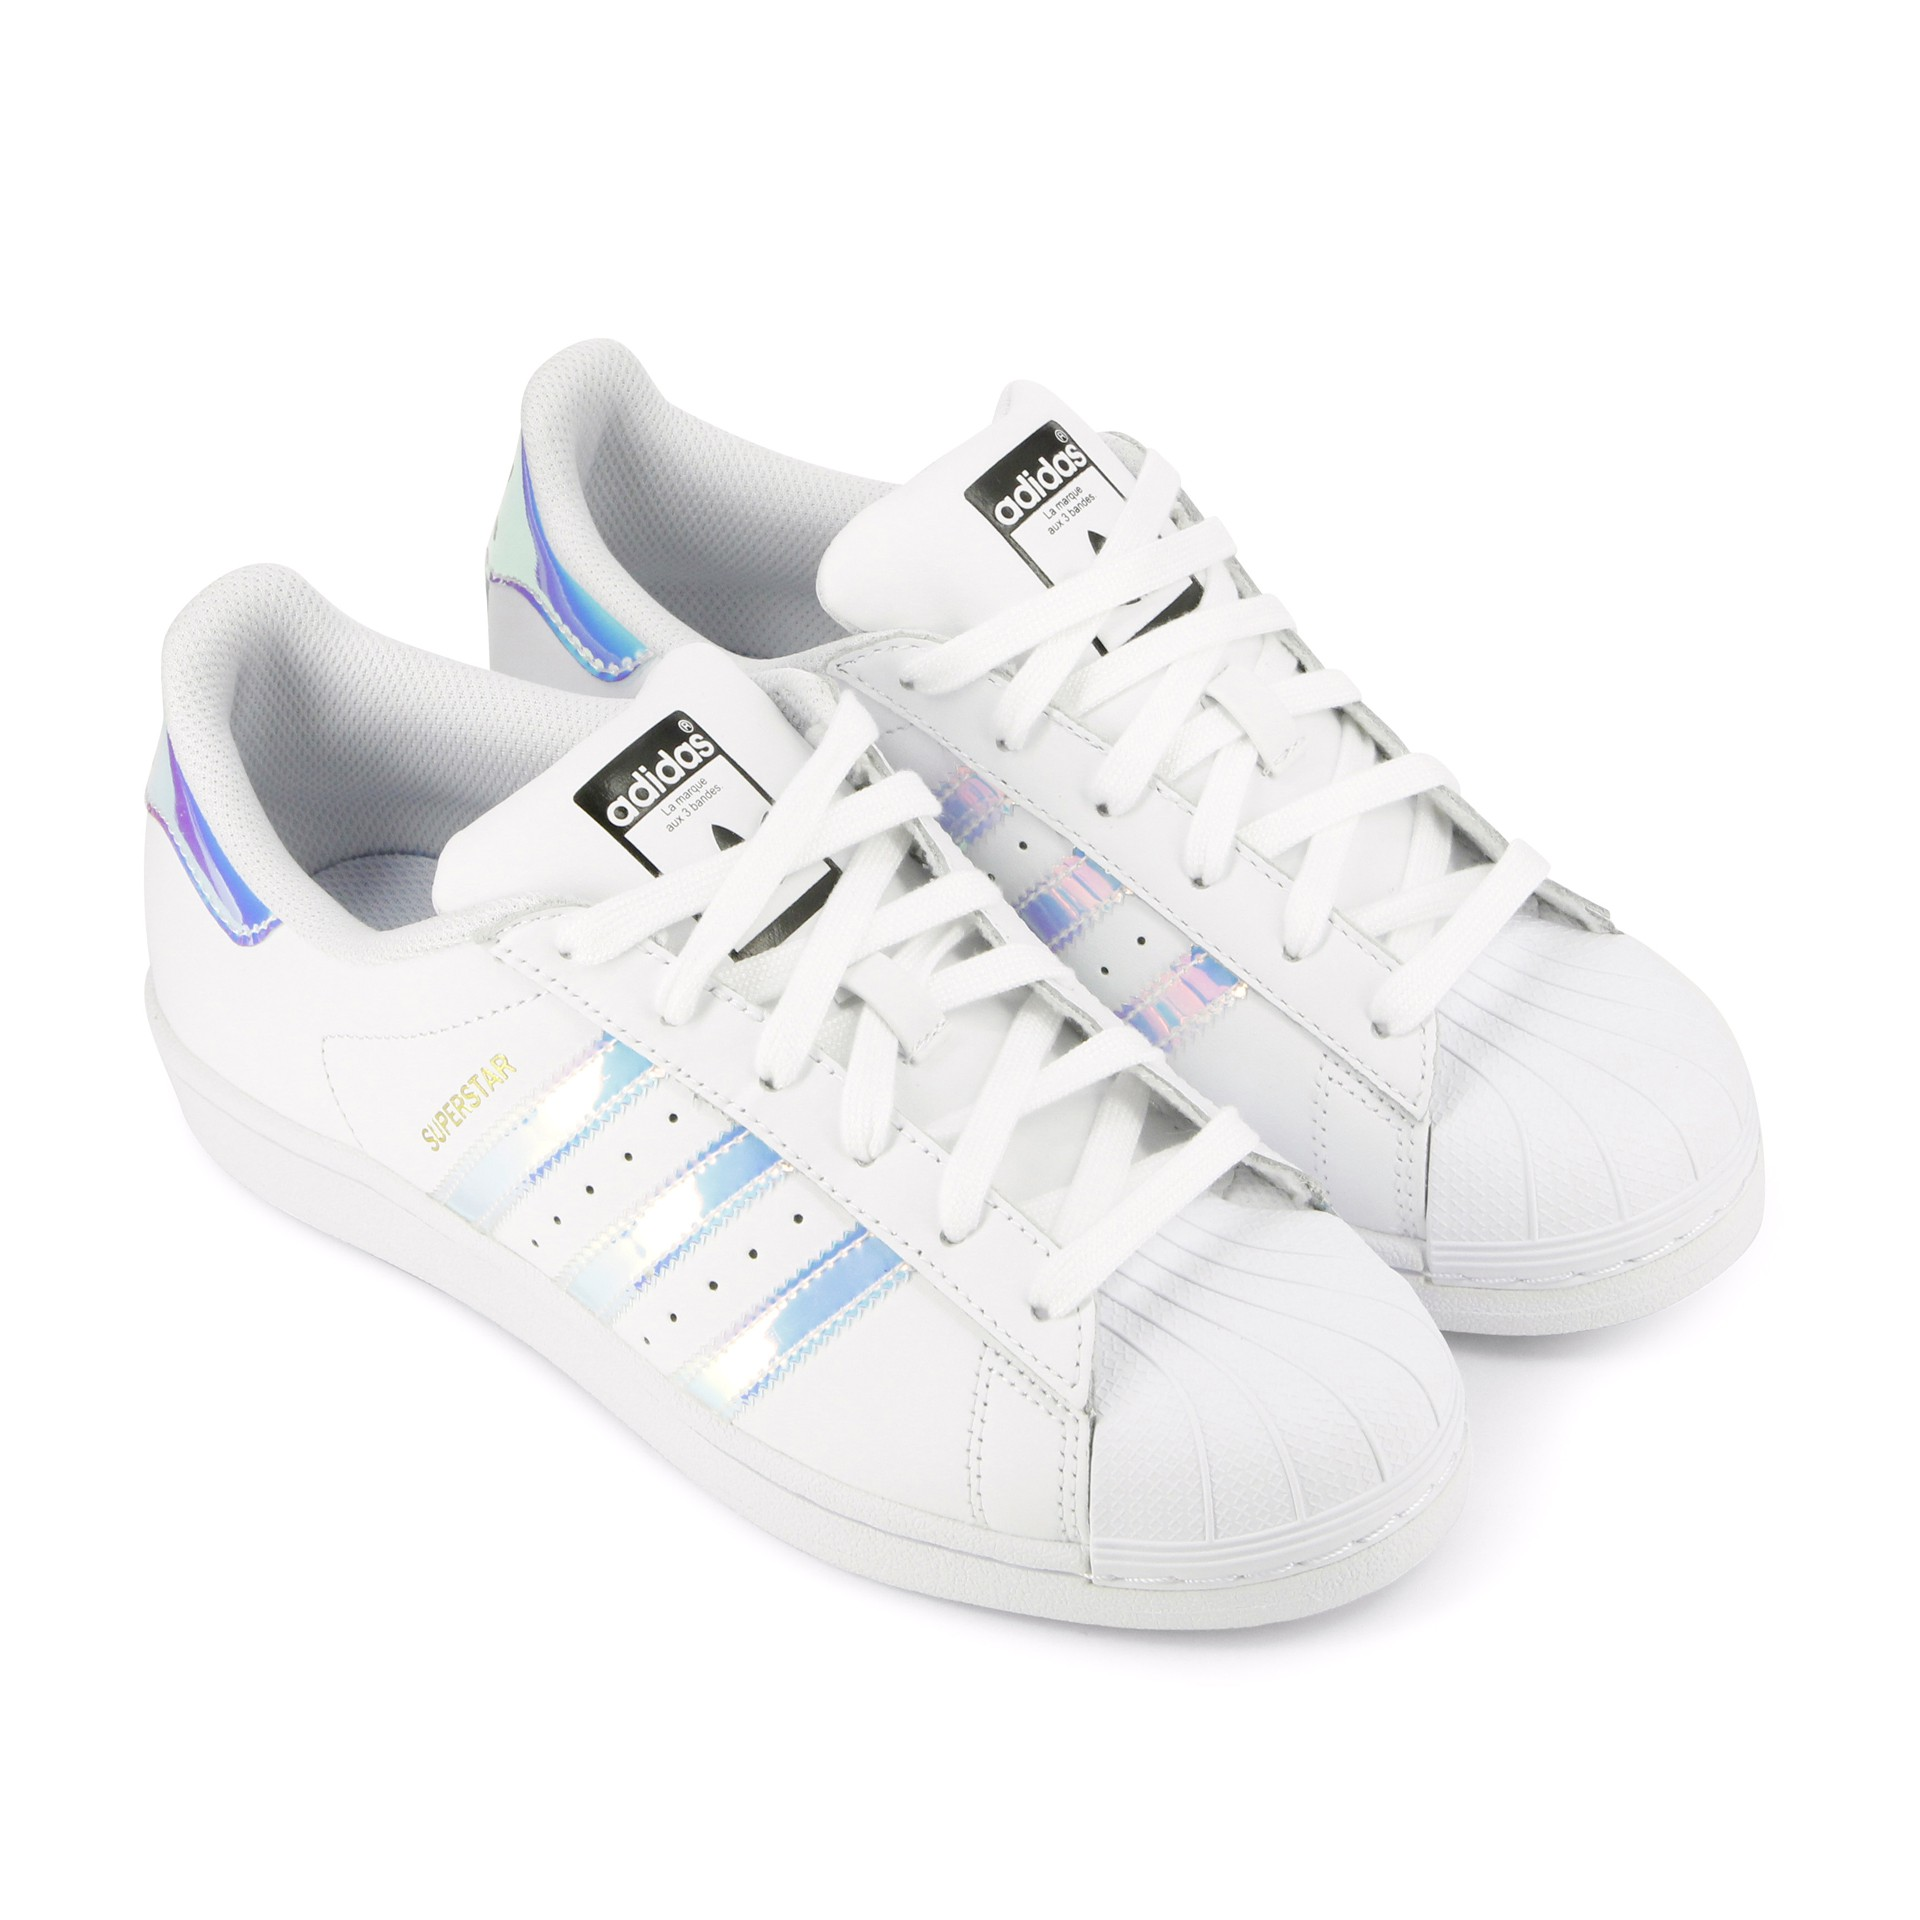 magasin d'usine e390c d34b2 adidas superstar femme junior une vente de liquidation de ...